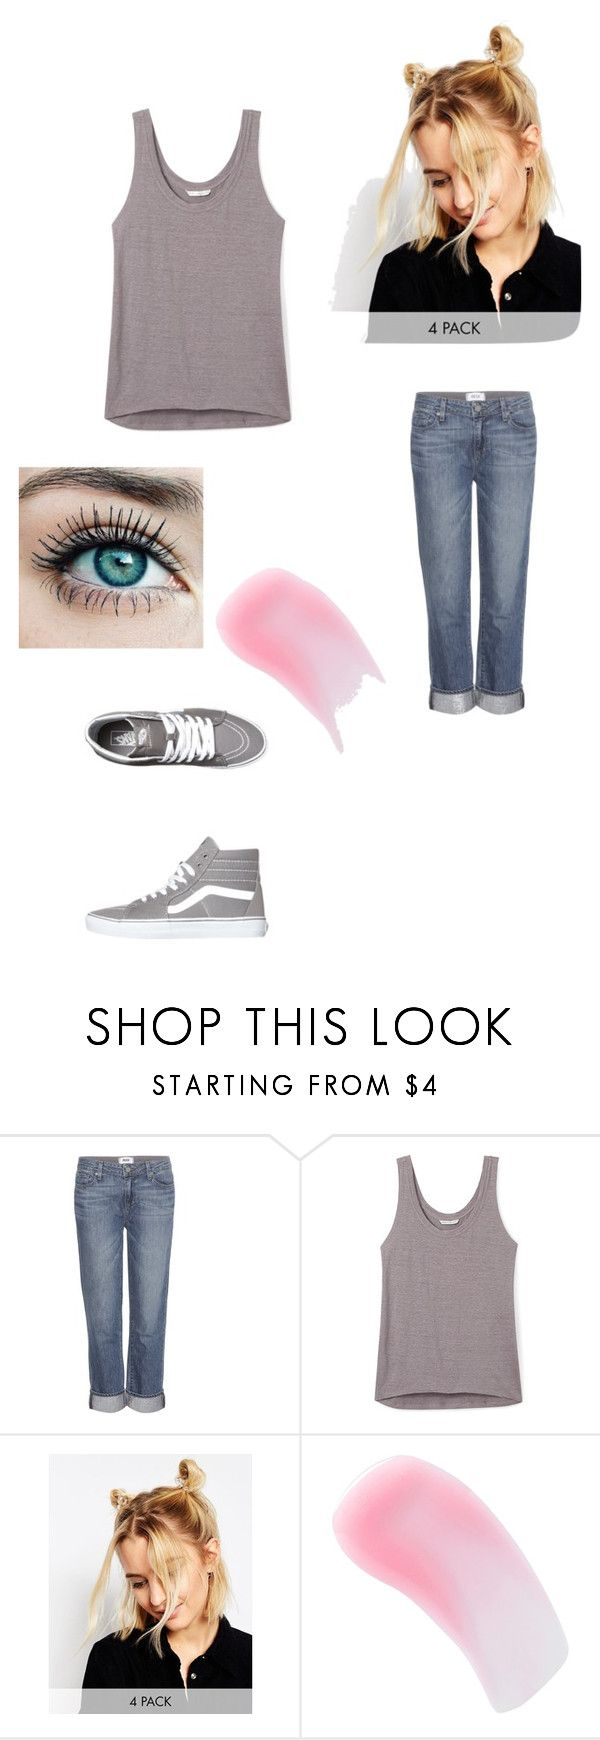 """Meeting France Again"" by maryvarleyrox ❤ liked on Polyvore featuring Paige Denim, Rebecca Minkoff, ASOS, Charlotte Tilbury and Vans"